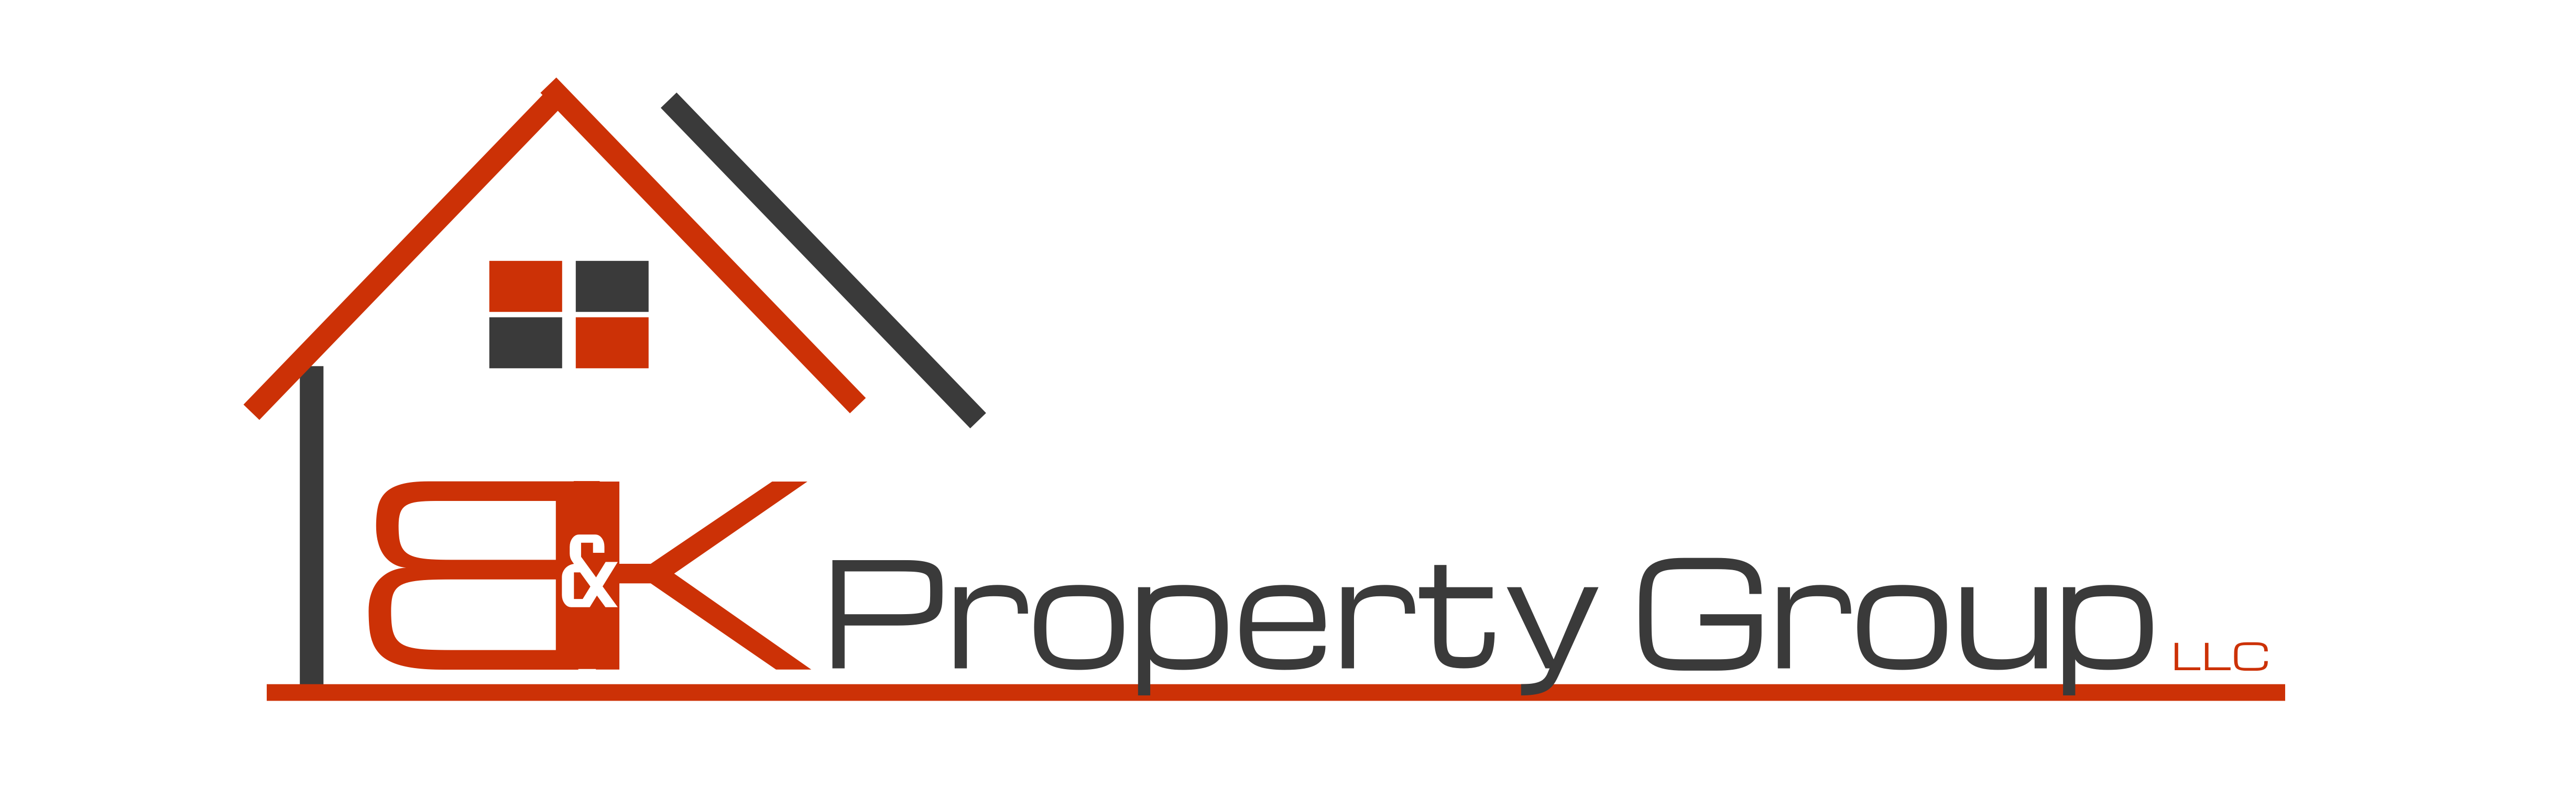 BK Property Group